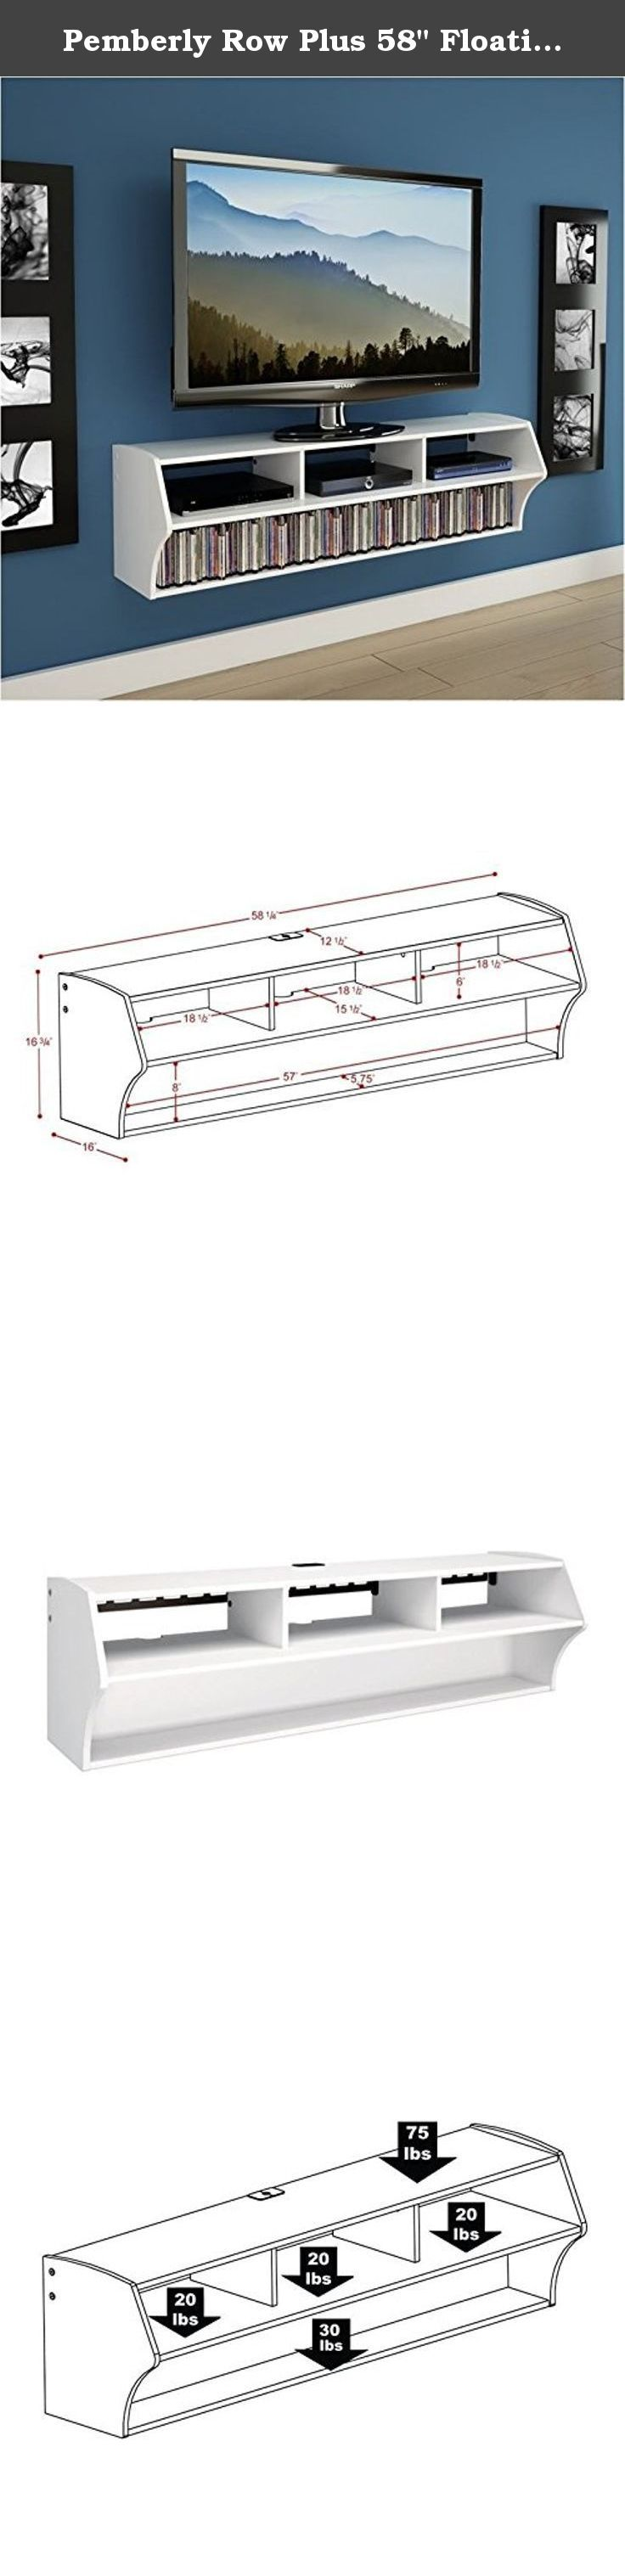 """Pemberly Row Plus 58"""" Floating TV Stand in White. The minimalist, off-the floor design of the Plus eliminates the need for a separate wall-mount TV bracket and is the perfect pairing for any flat screen TV up to 60"""". At 58 inches wide, it boasts three compartments for A/V components and a bottom shelf for media with room for 137 Blu-Ray Discs or 93 DVDs. Cables & power bars can be neatly concealed to maintain a clean, modern look. When installed according to the manufacturer's directions..."""